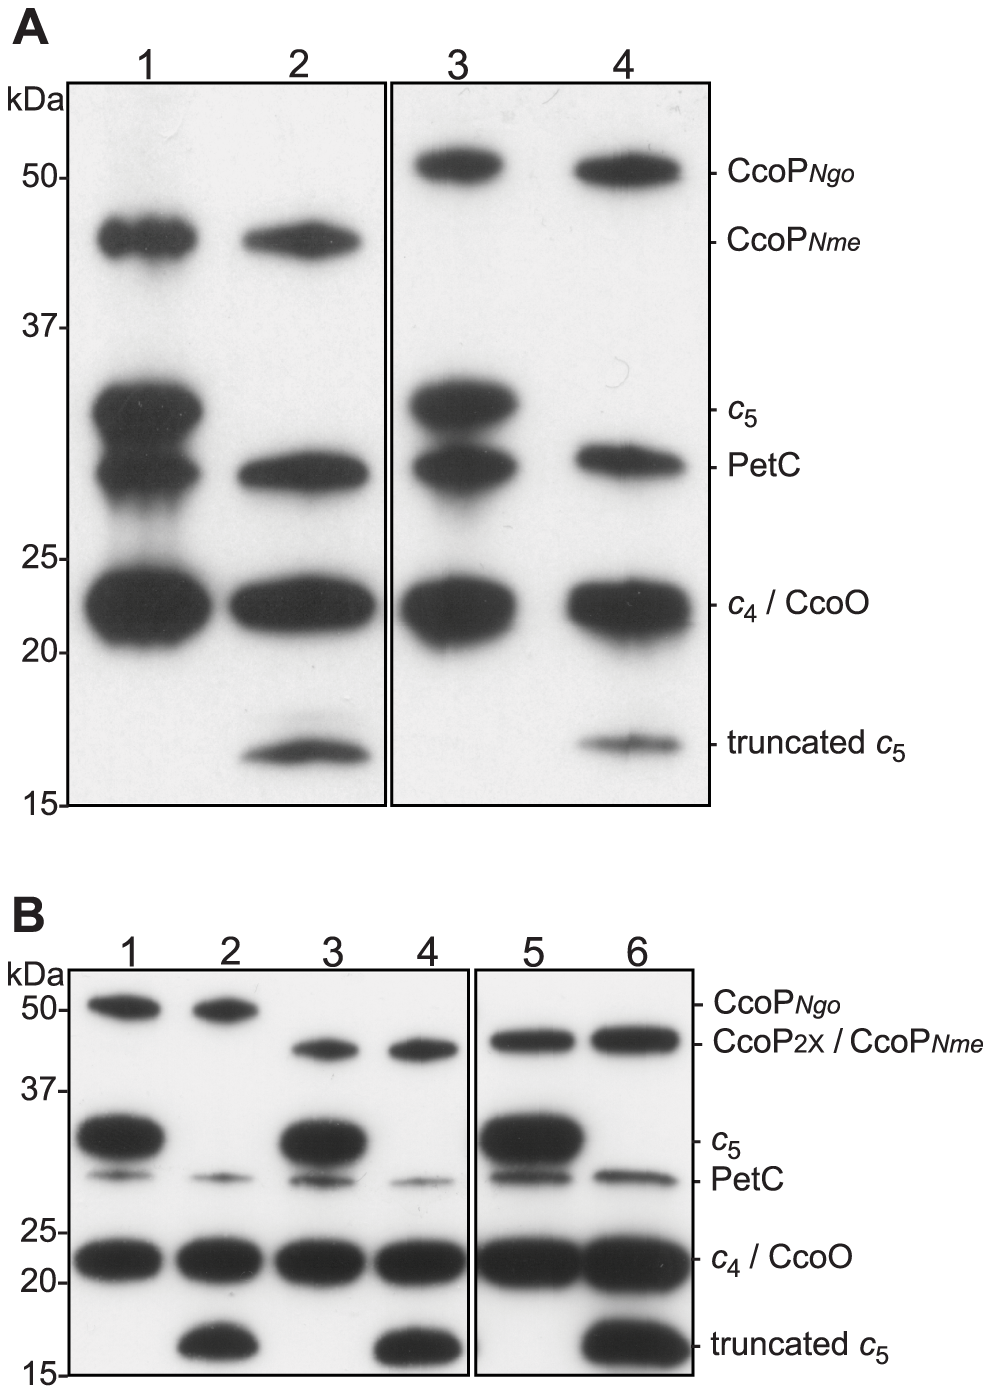 Heme-stained protein blots showing altered expression of <i>c</i><sub>5</sub> and CcoP in defined backgrounds.